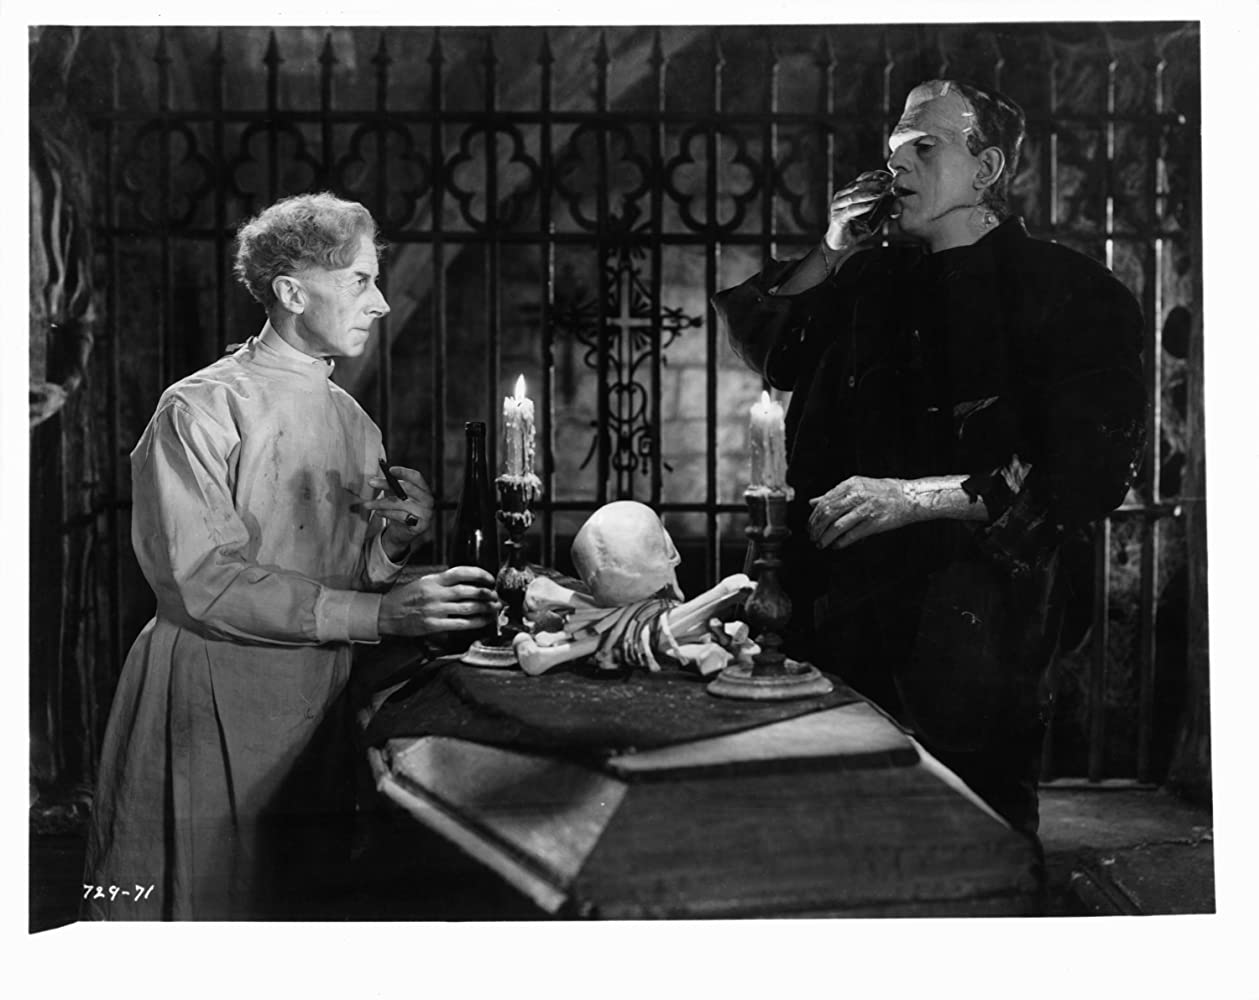 Boris Karloff and Ernest Thesiger in Bride of Frankenstein (1935)